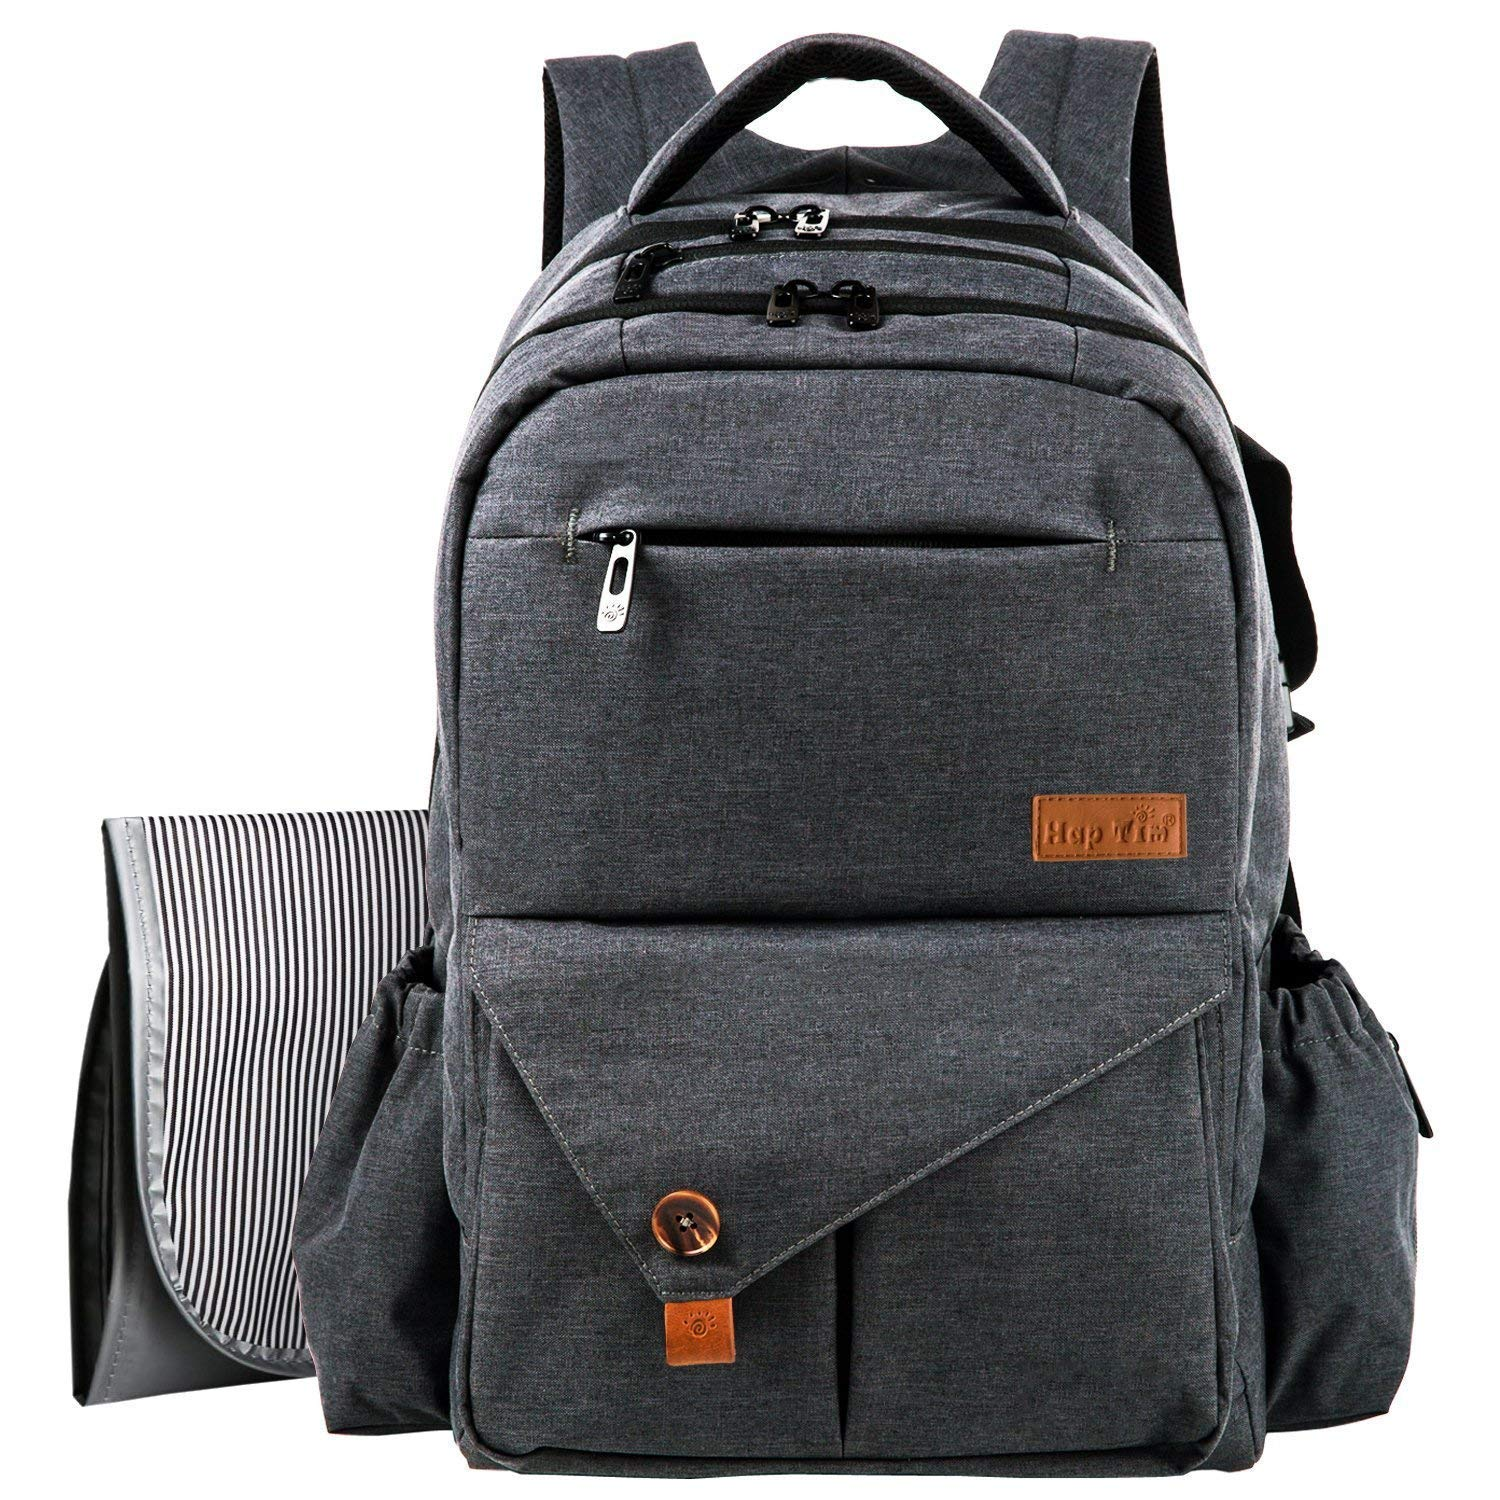 HapTim Multi-function Large Baby Diaper Bag Backpack W/Stroller Straps-Insulated Bottle Pockets-Changing Pad,Stylish & Durable(Dark Gray-5284) by Hap Tim